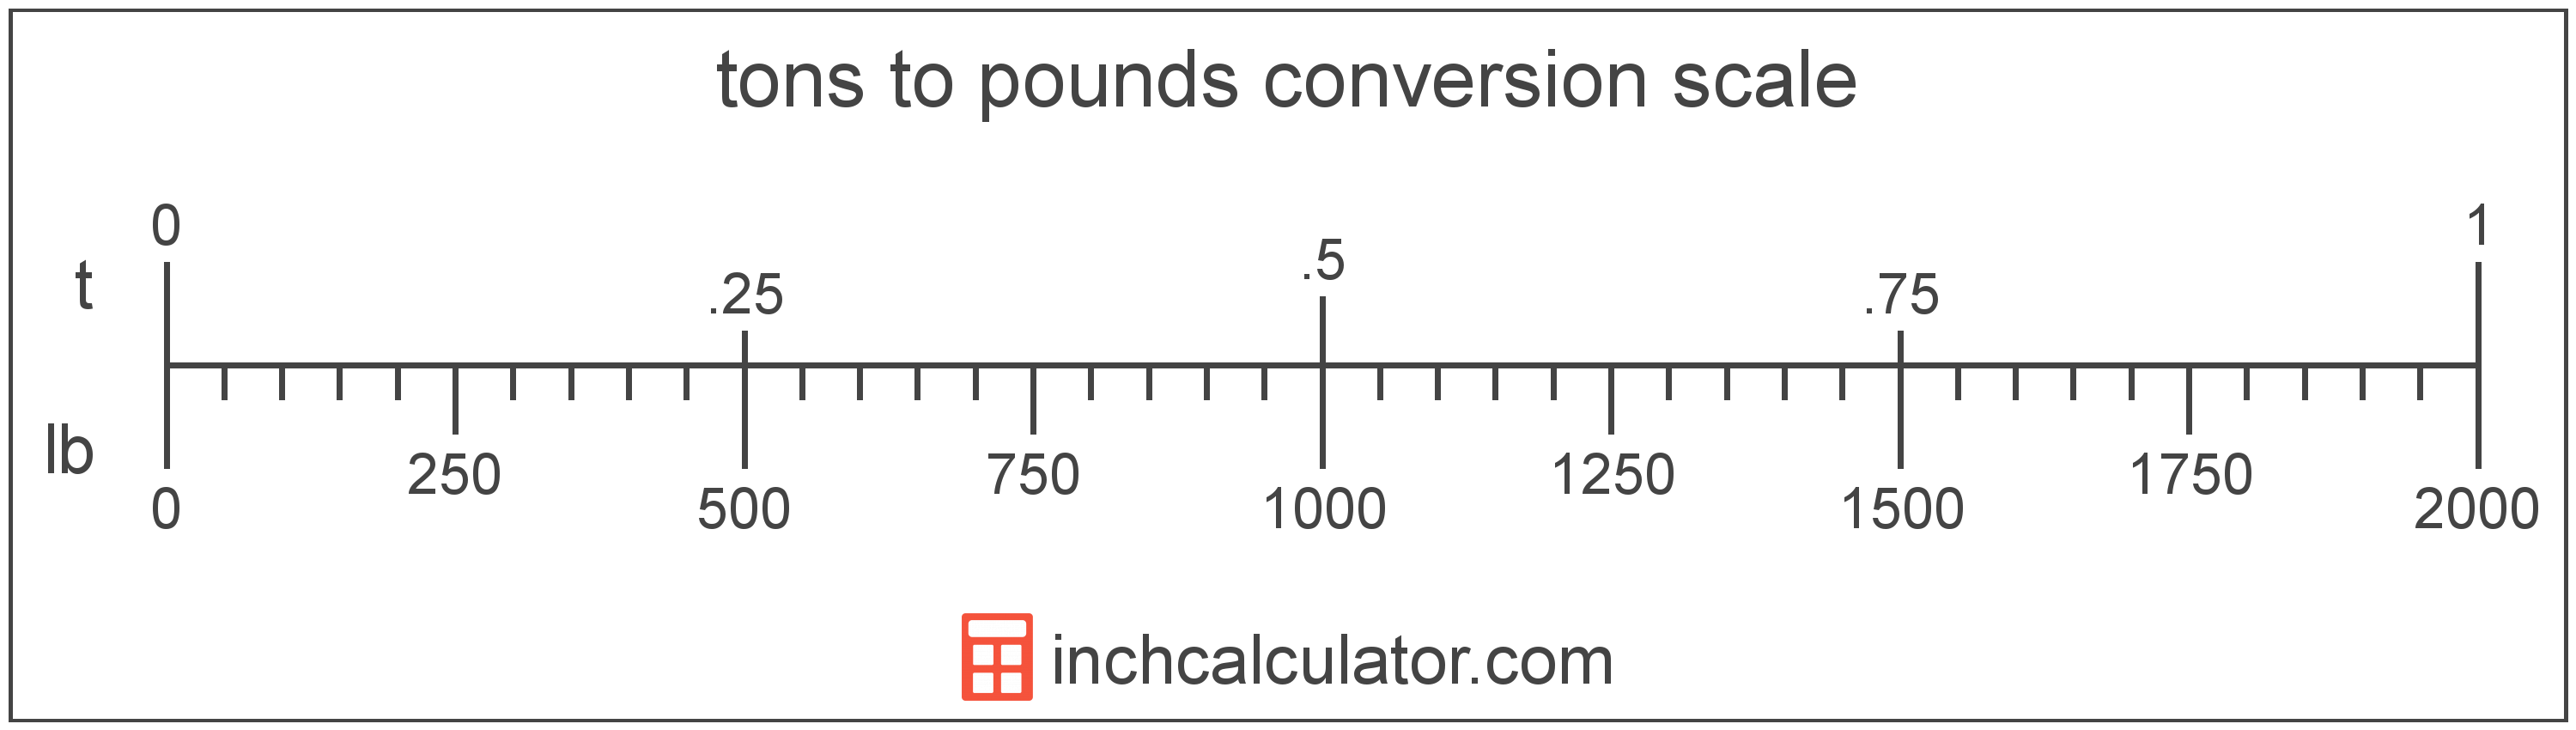 conversion scale showing pounds and equivalent tons weight values